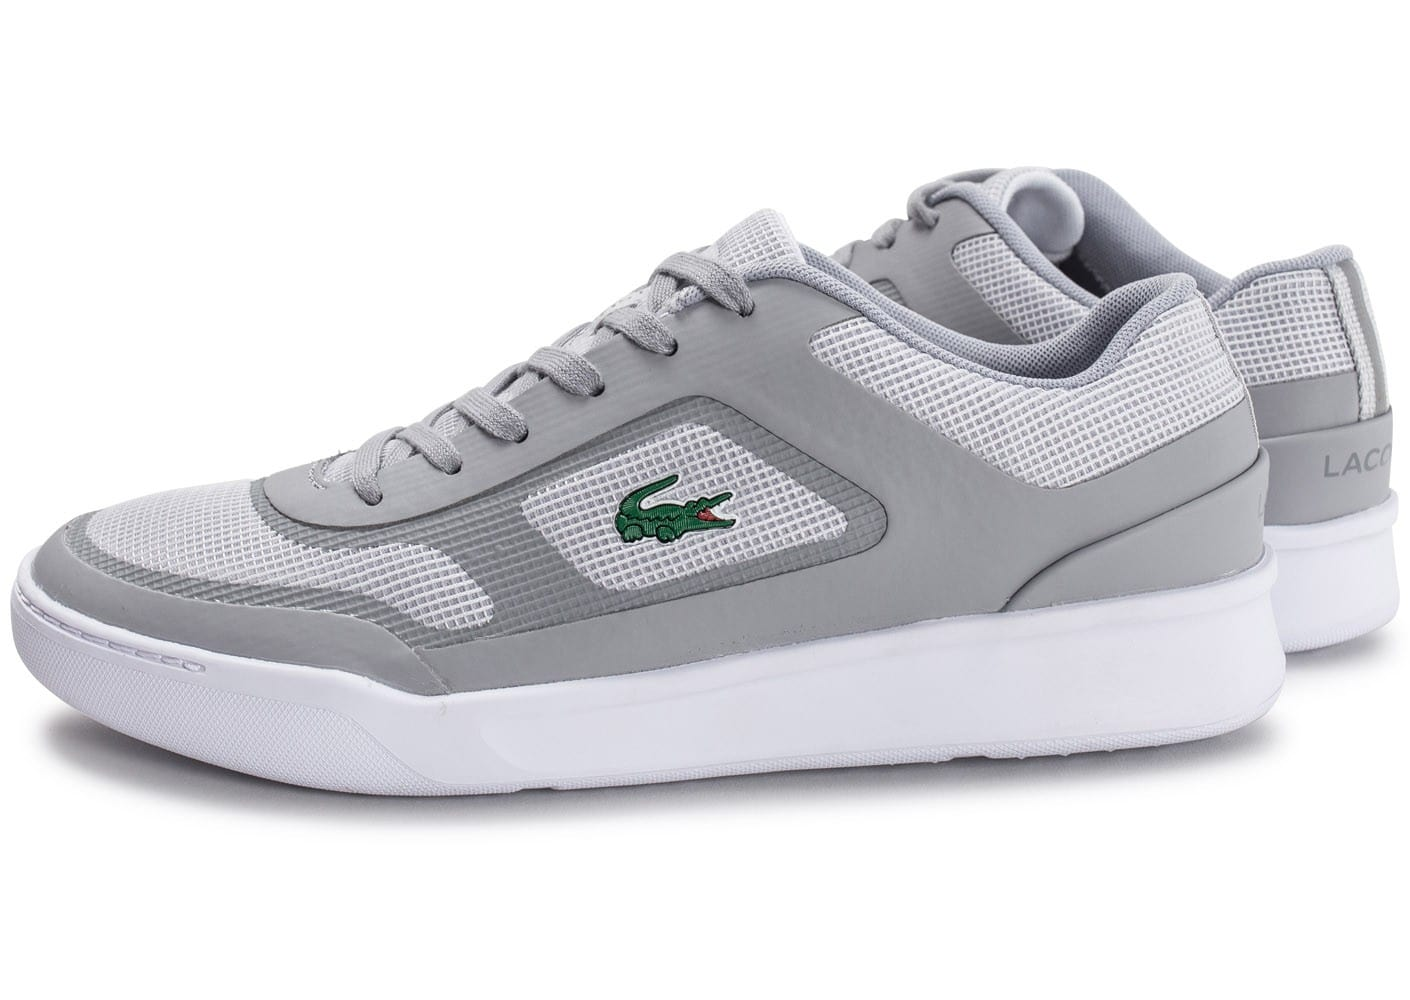 Lacoste Baskets/Tennis Explorateur Sport Gris Clair Homme